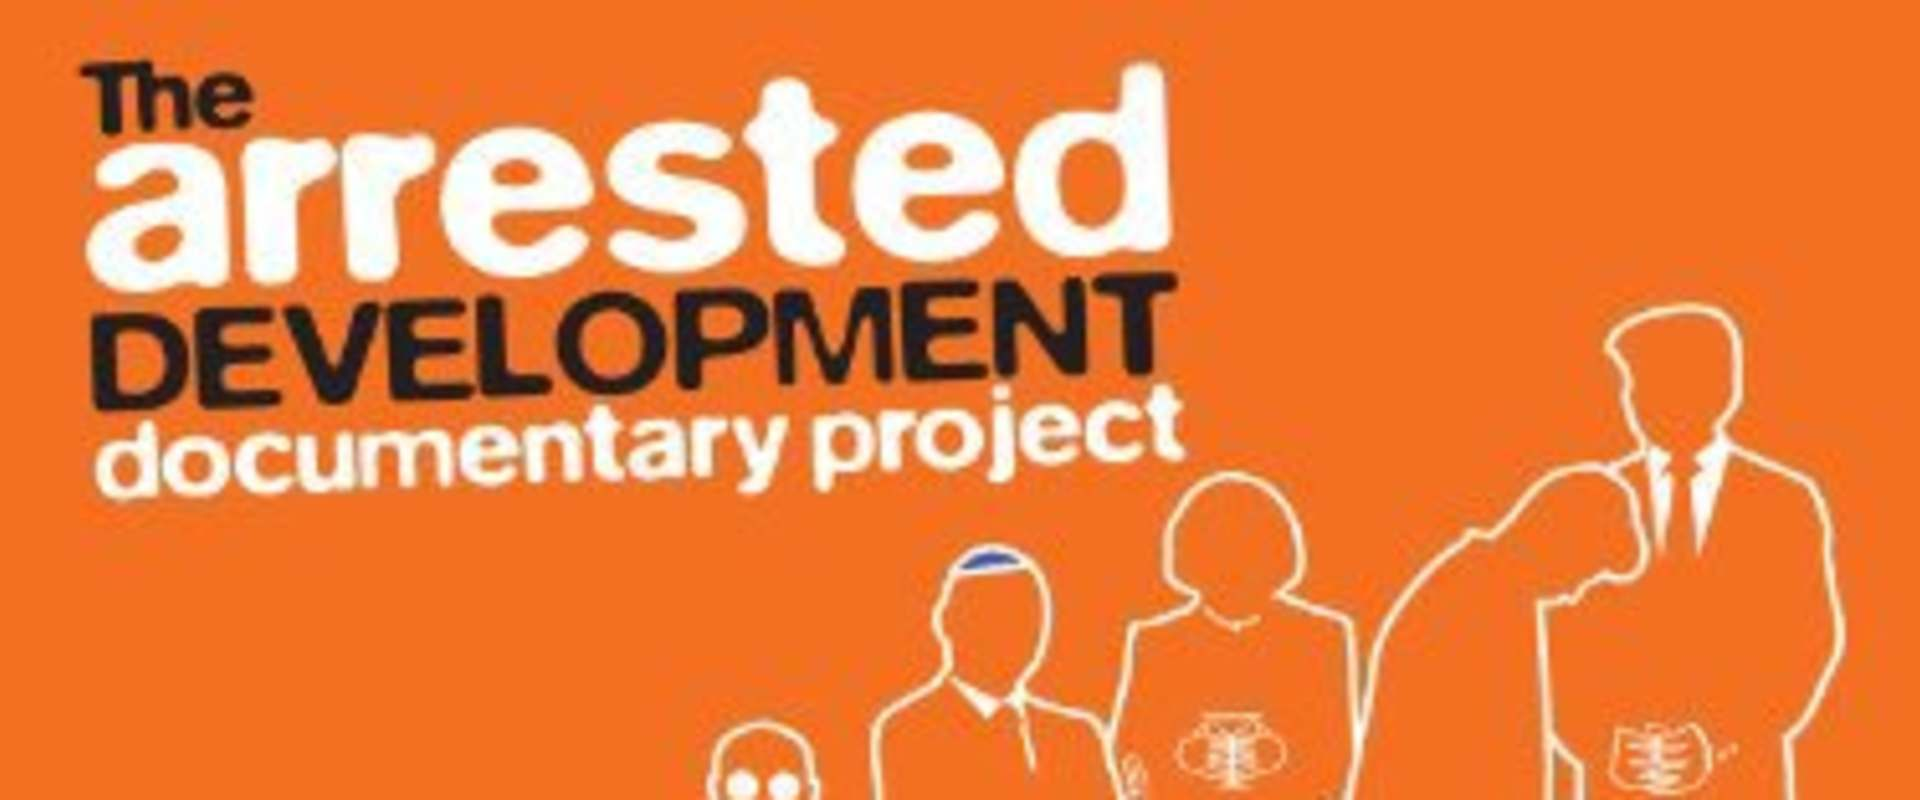 The Arrested Development Documentary Project background 1